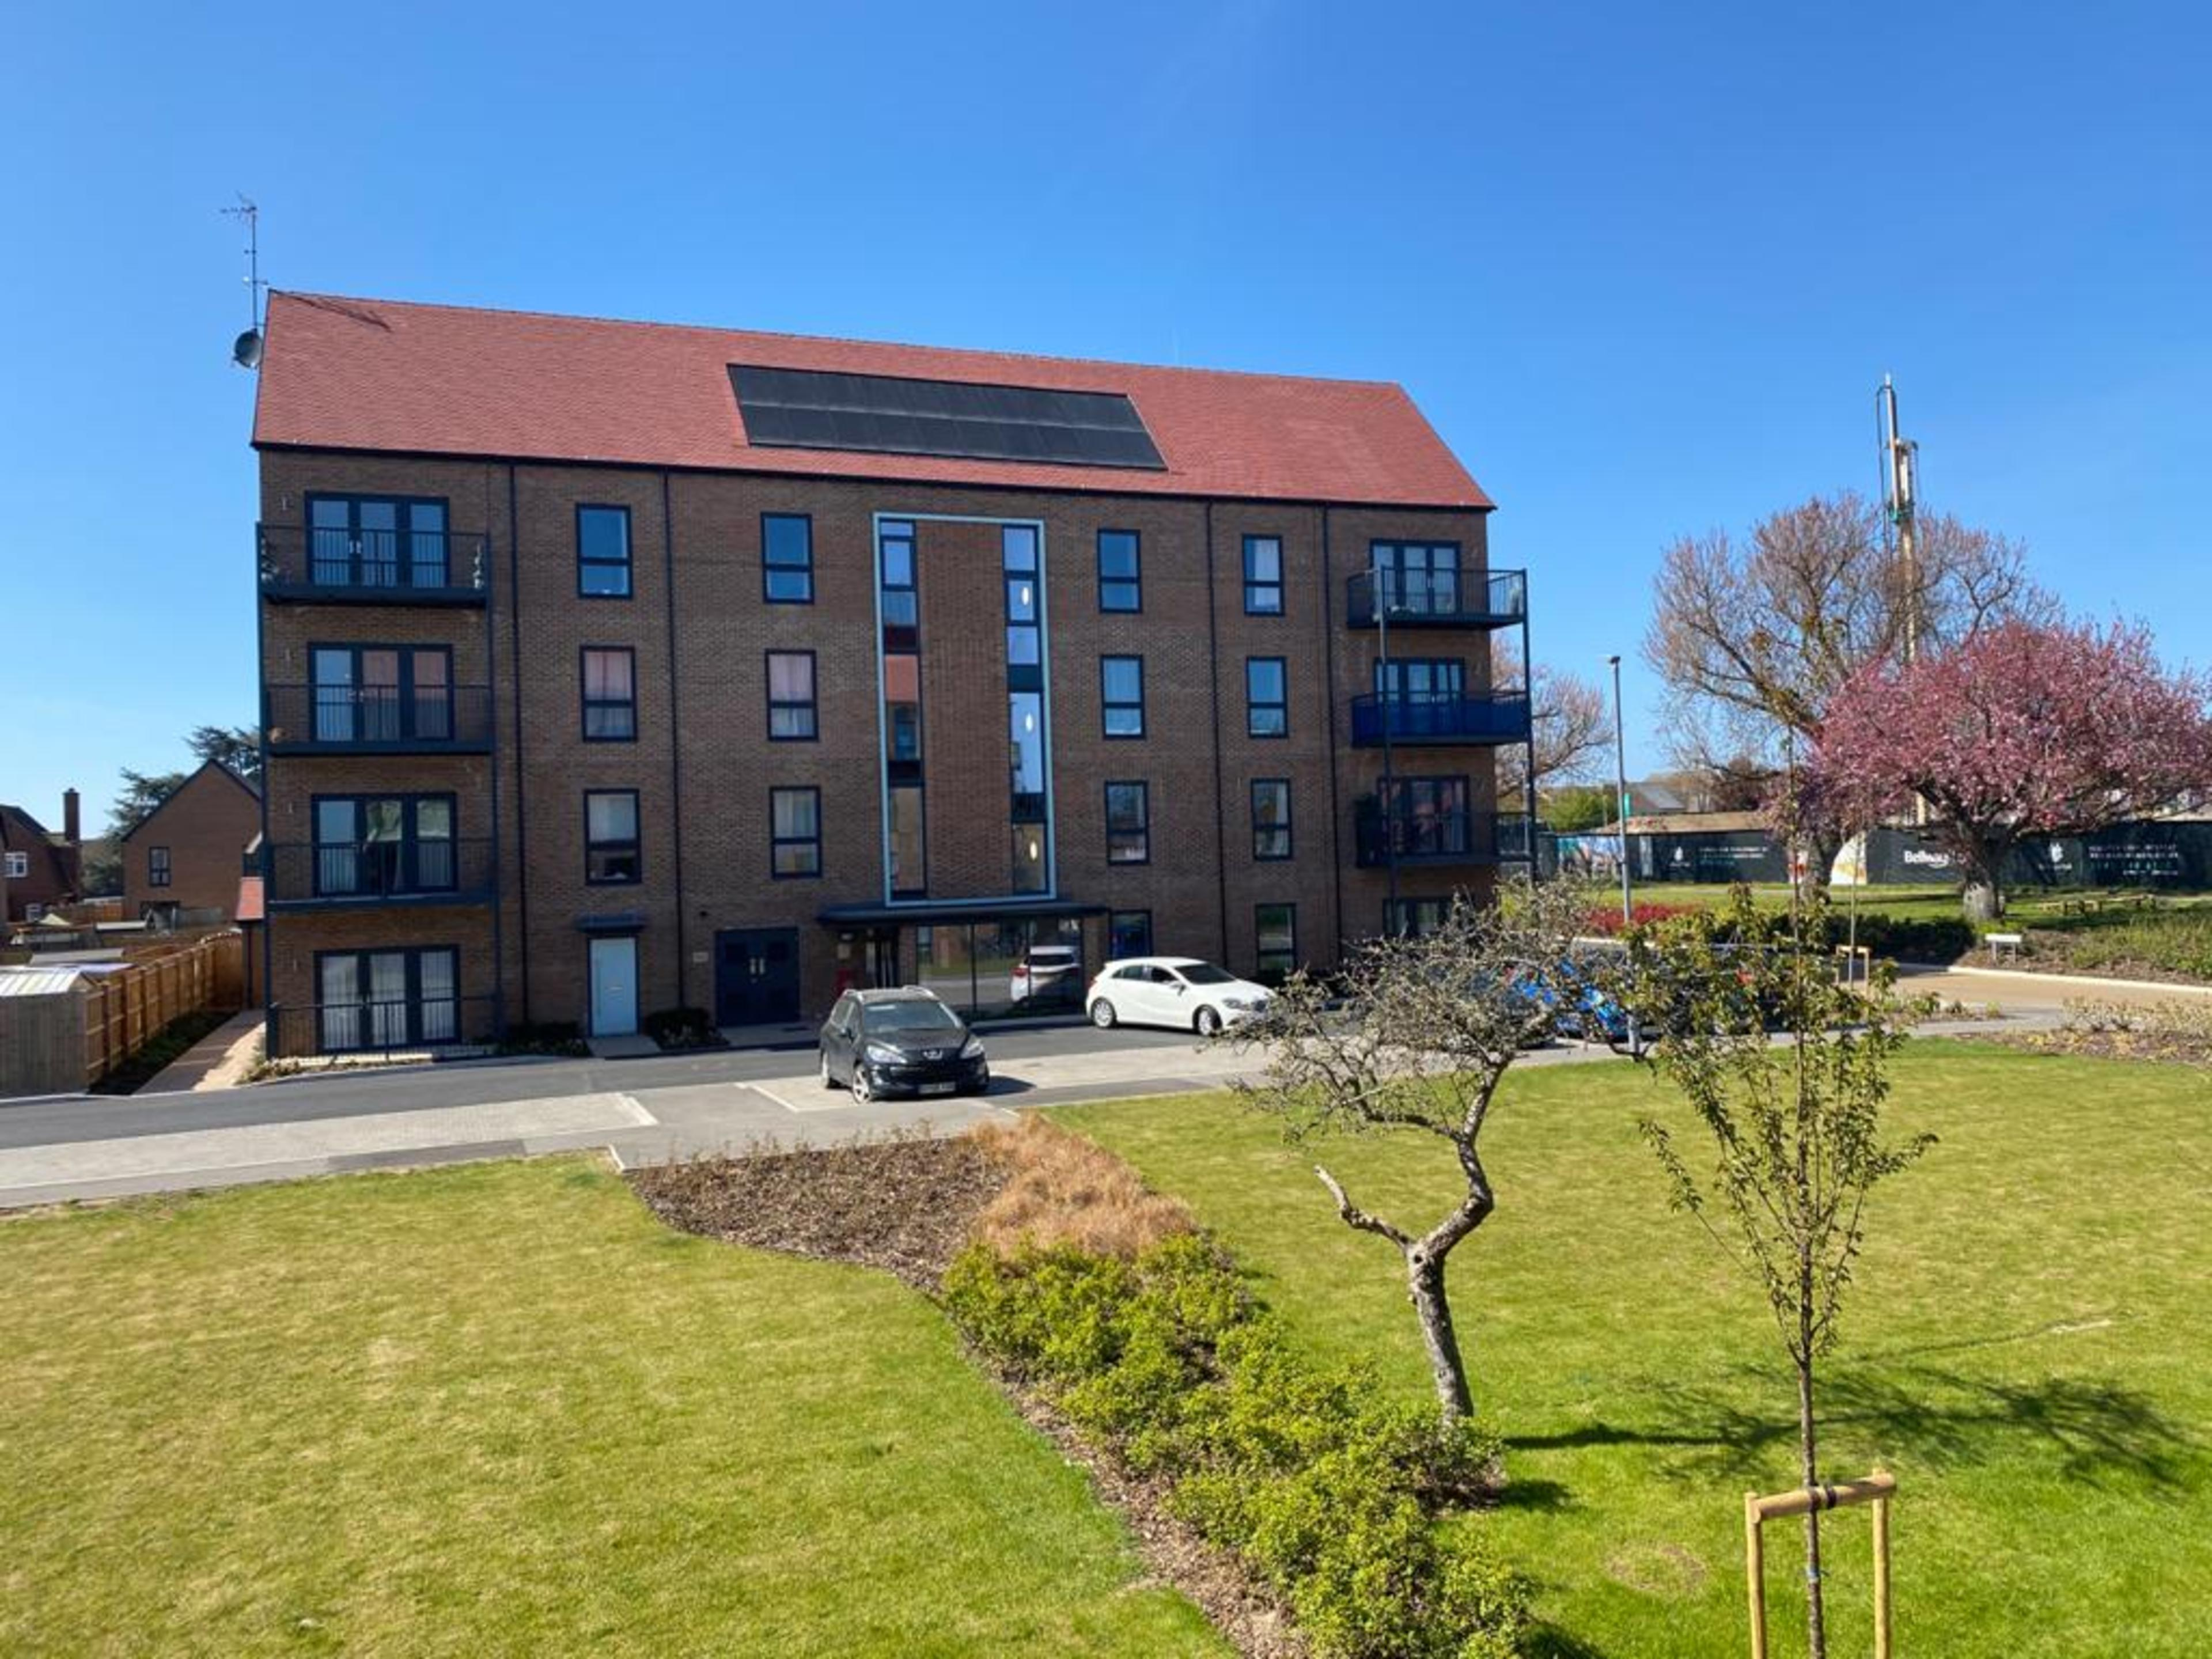 st-georges-park-new-build-2-bed-apartment-shared-ownership